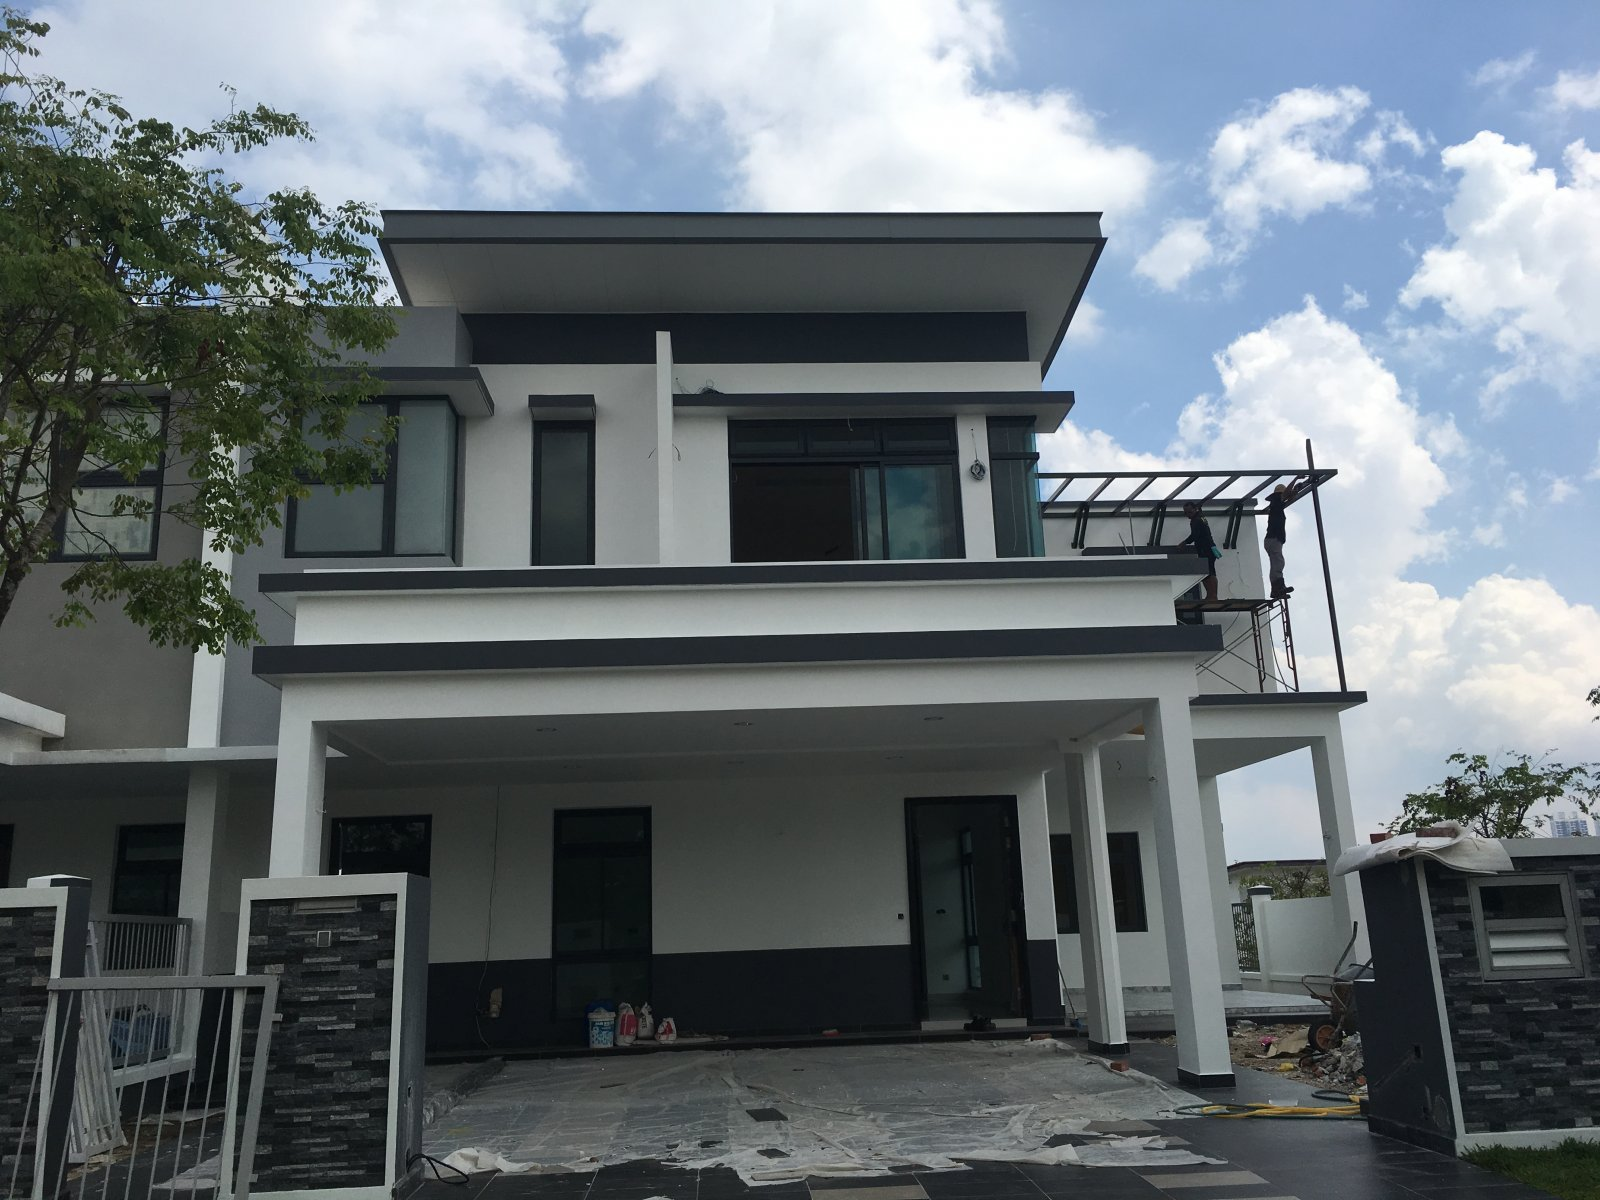 new job completed - Horizon hill Jalan Serambi